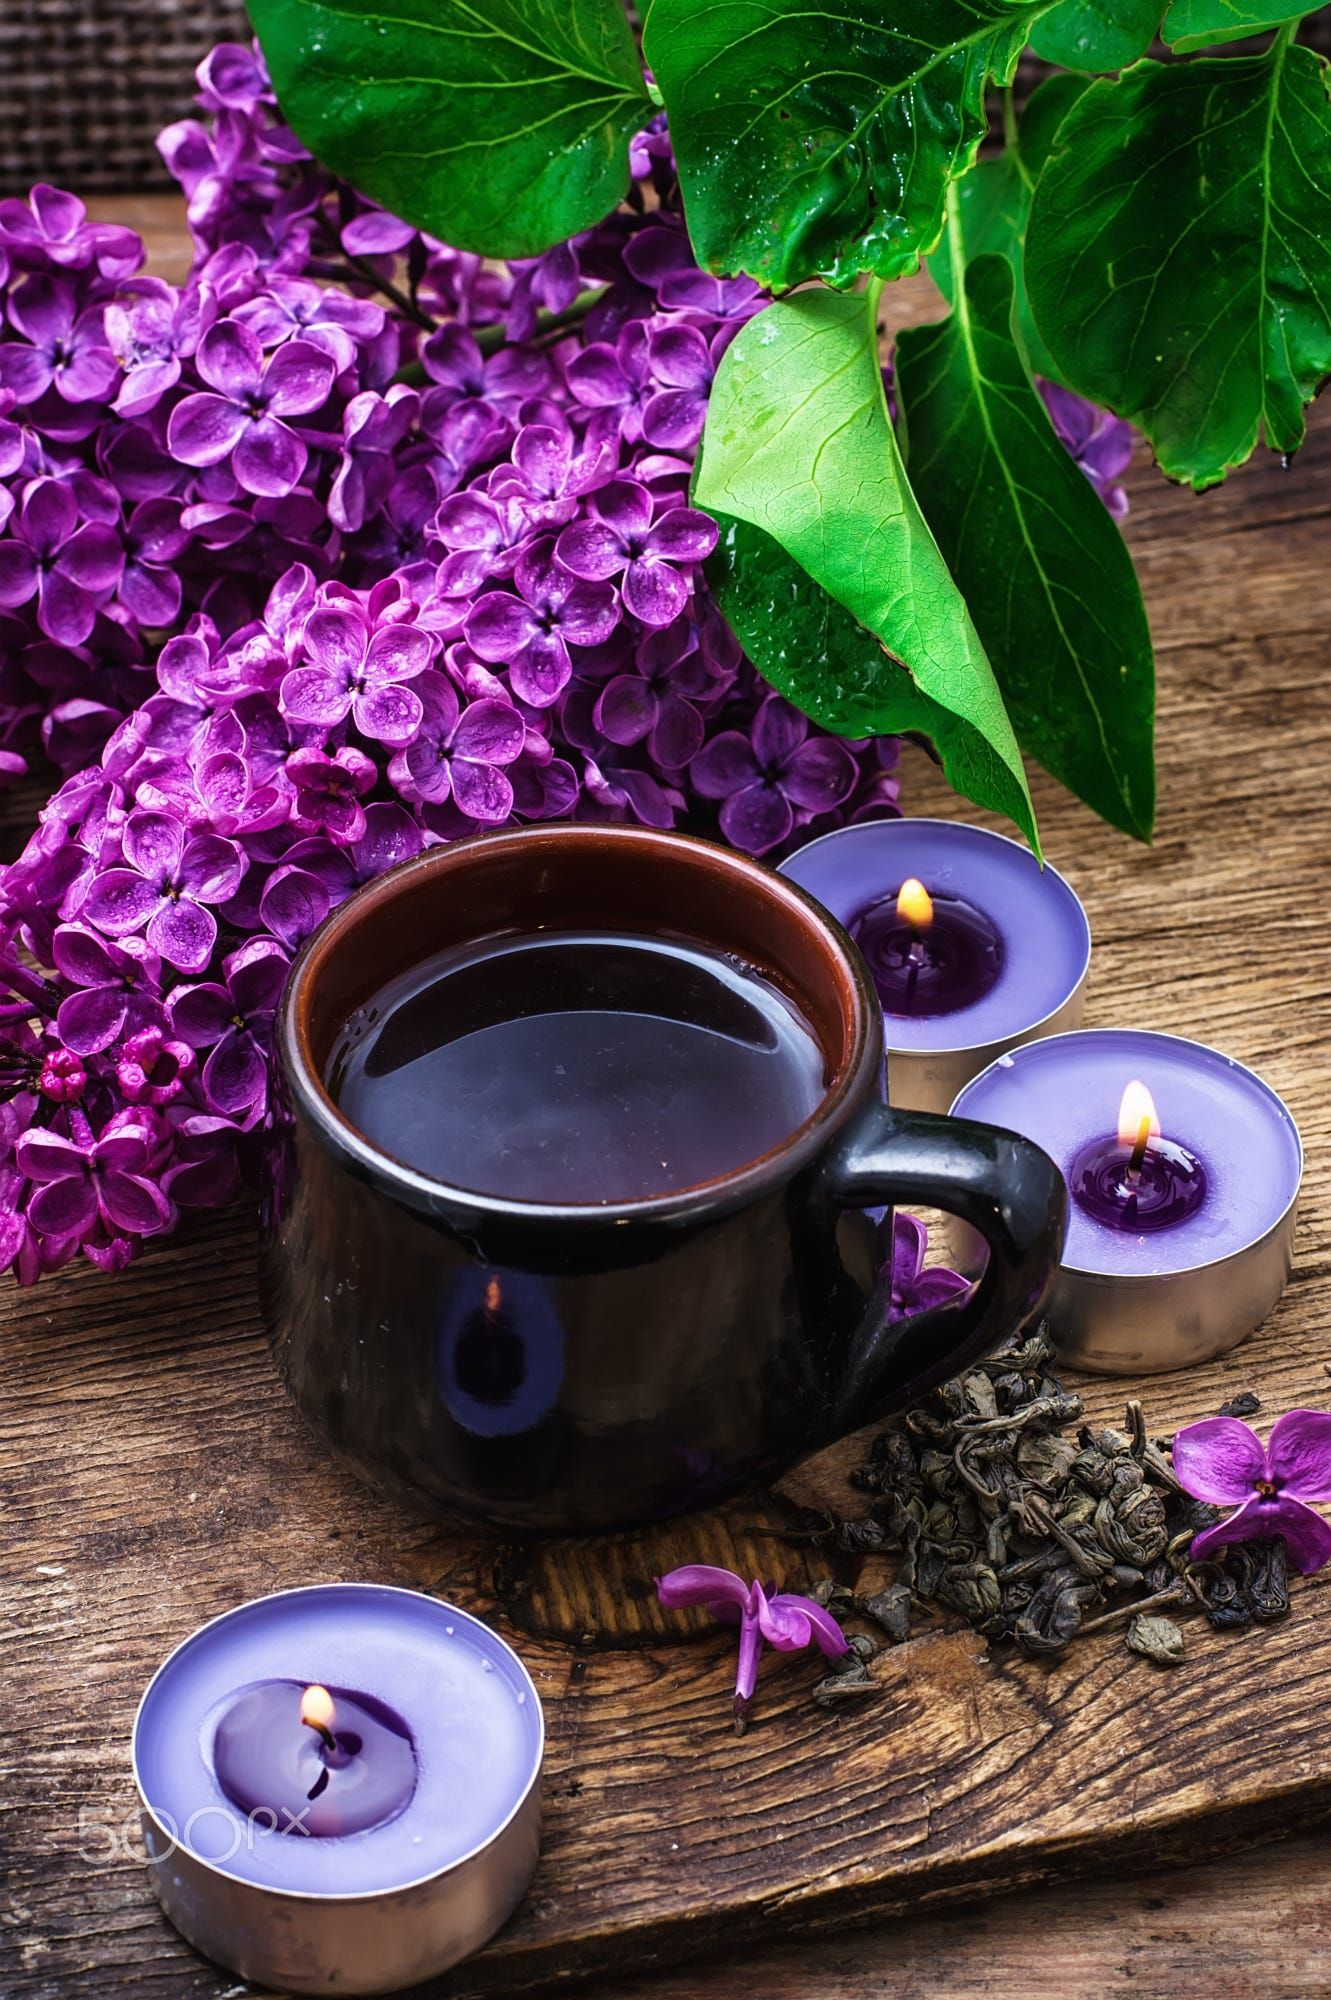 Fragrant Spring Flower Tea On The Background Of Burning Candles And